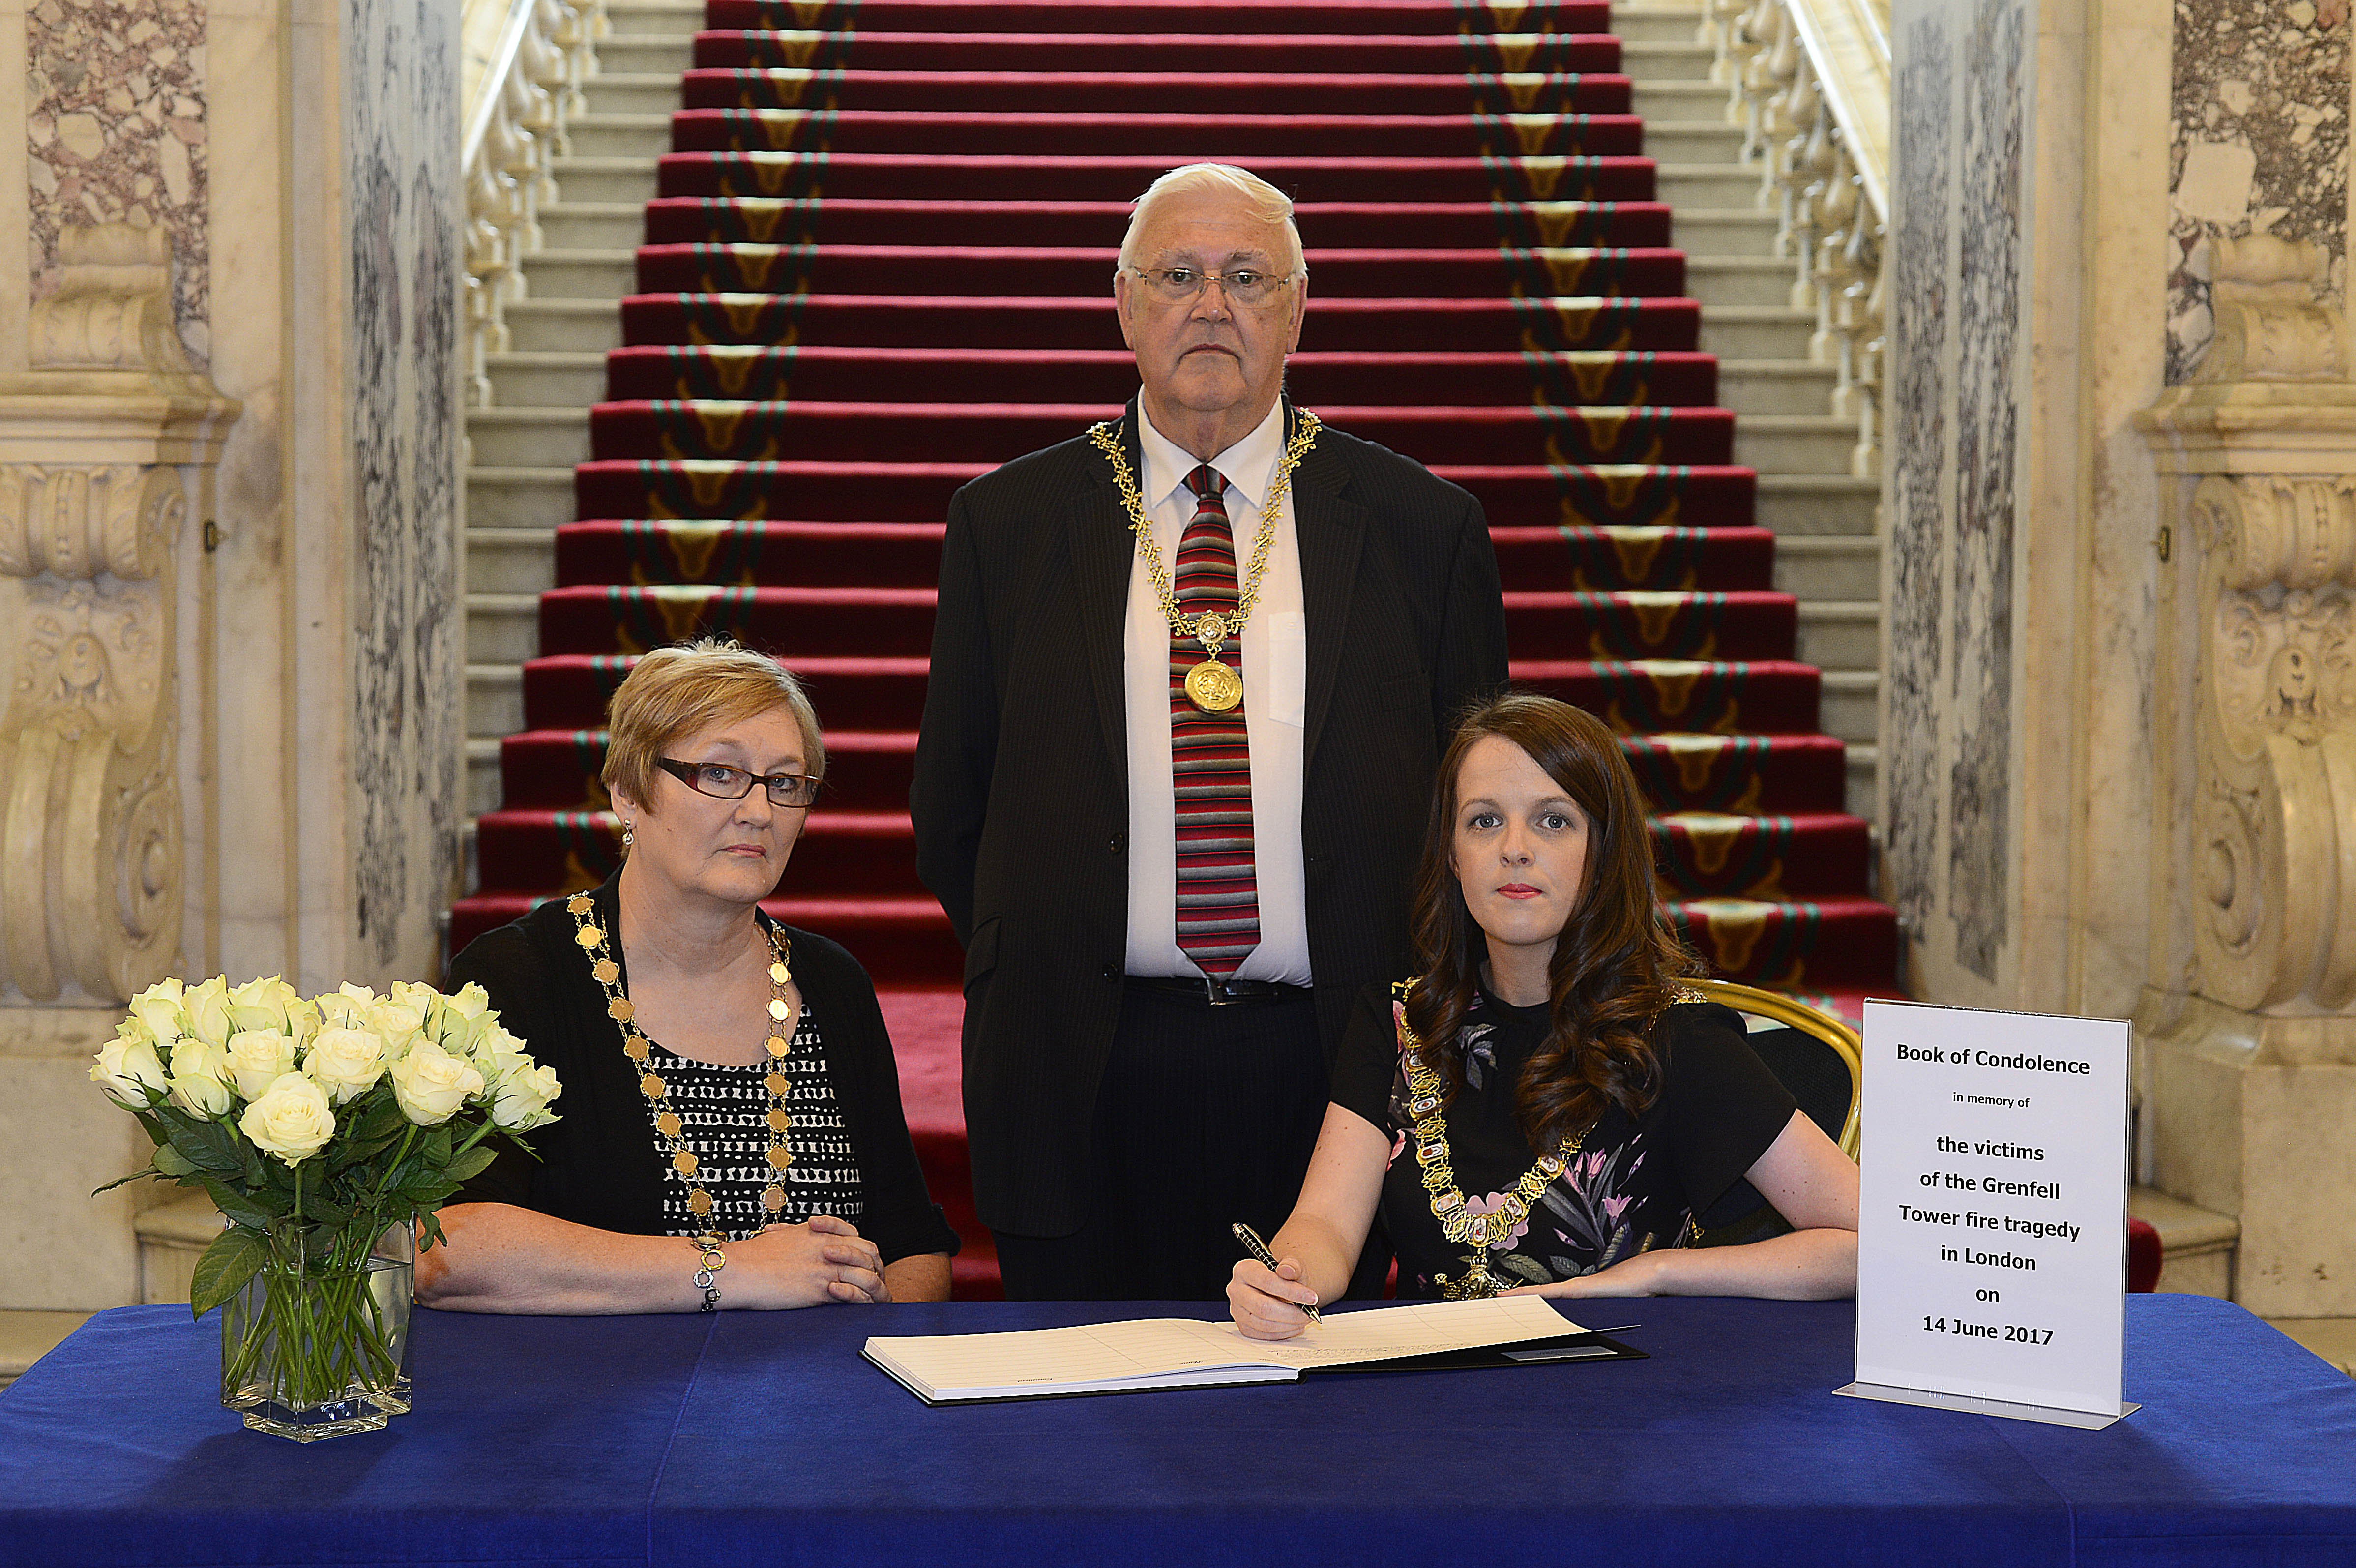 Belfast Book of Condolence For Victims of Grenfell Tower